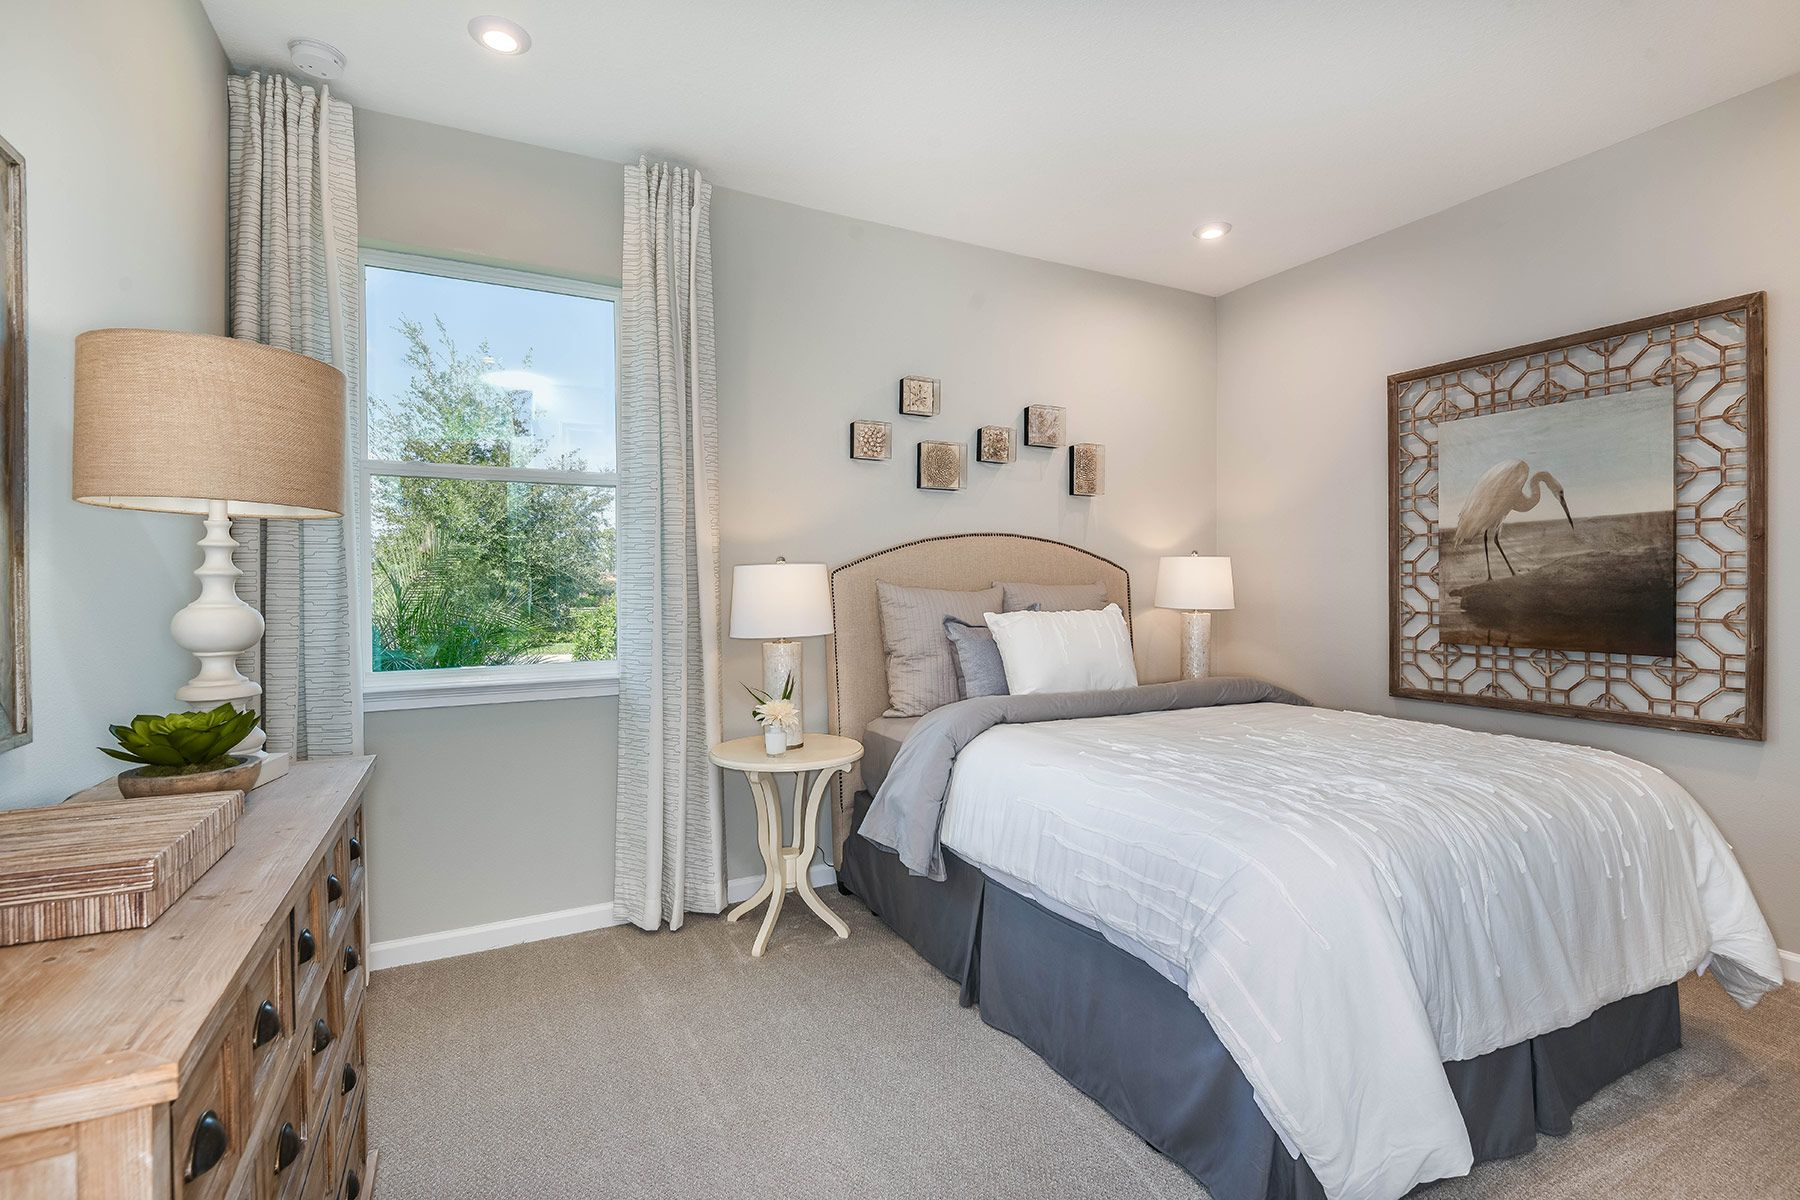 Bedroom featured in the Riviera III By Mattamy Homes in Tampa-St. Petersburg, FL